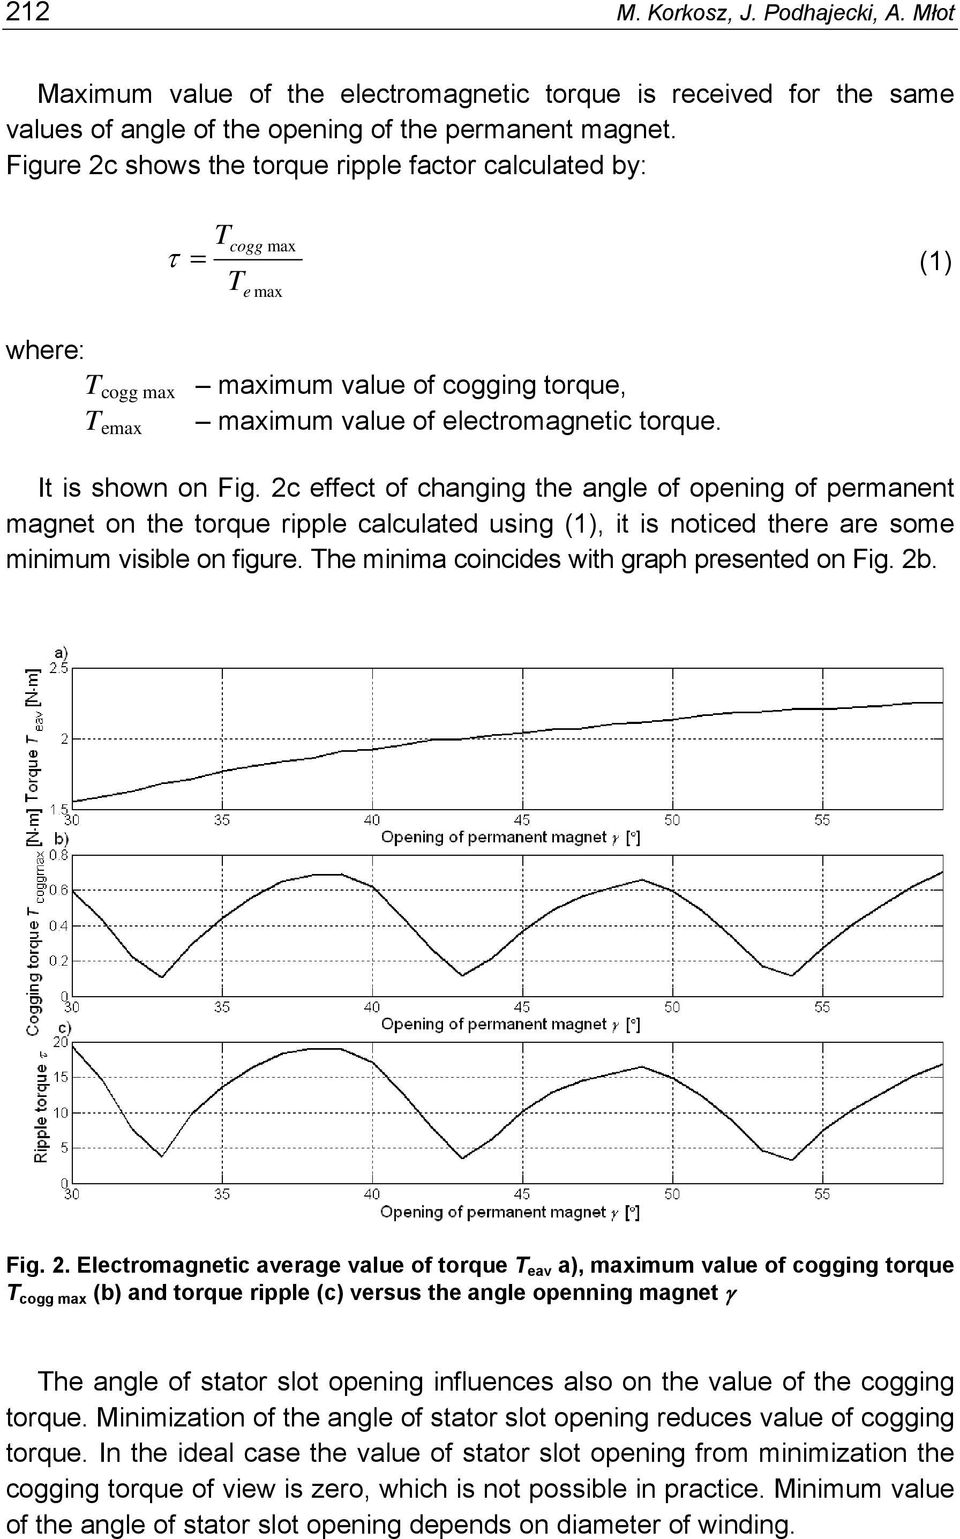 2c effect of changing the angle of opening of permanent magnet on the torque ripple calculated using (1), it is noticed there are some minimum visible on figure.